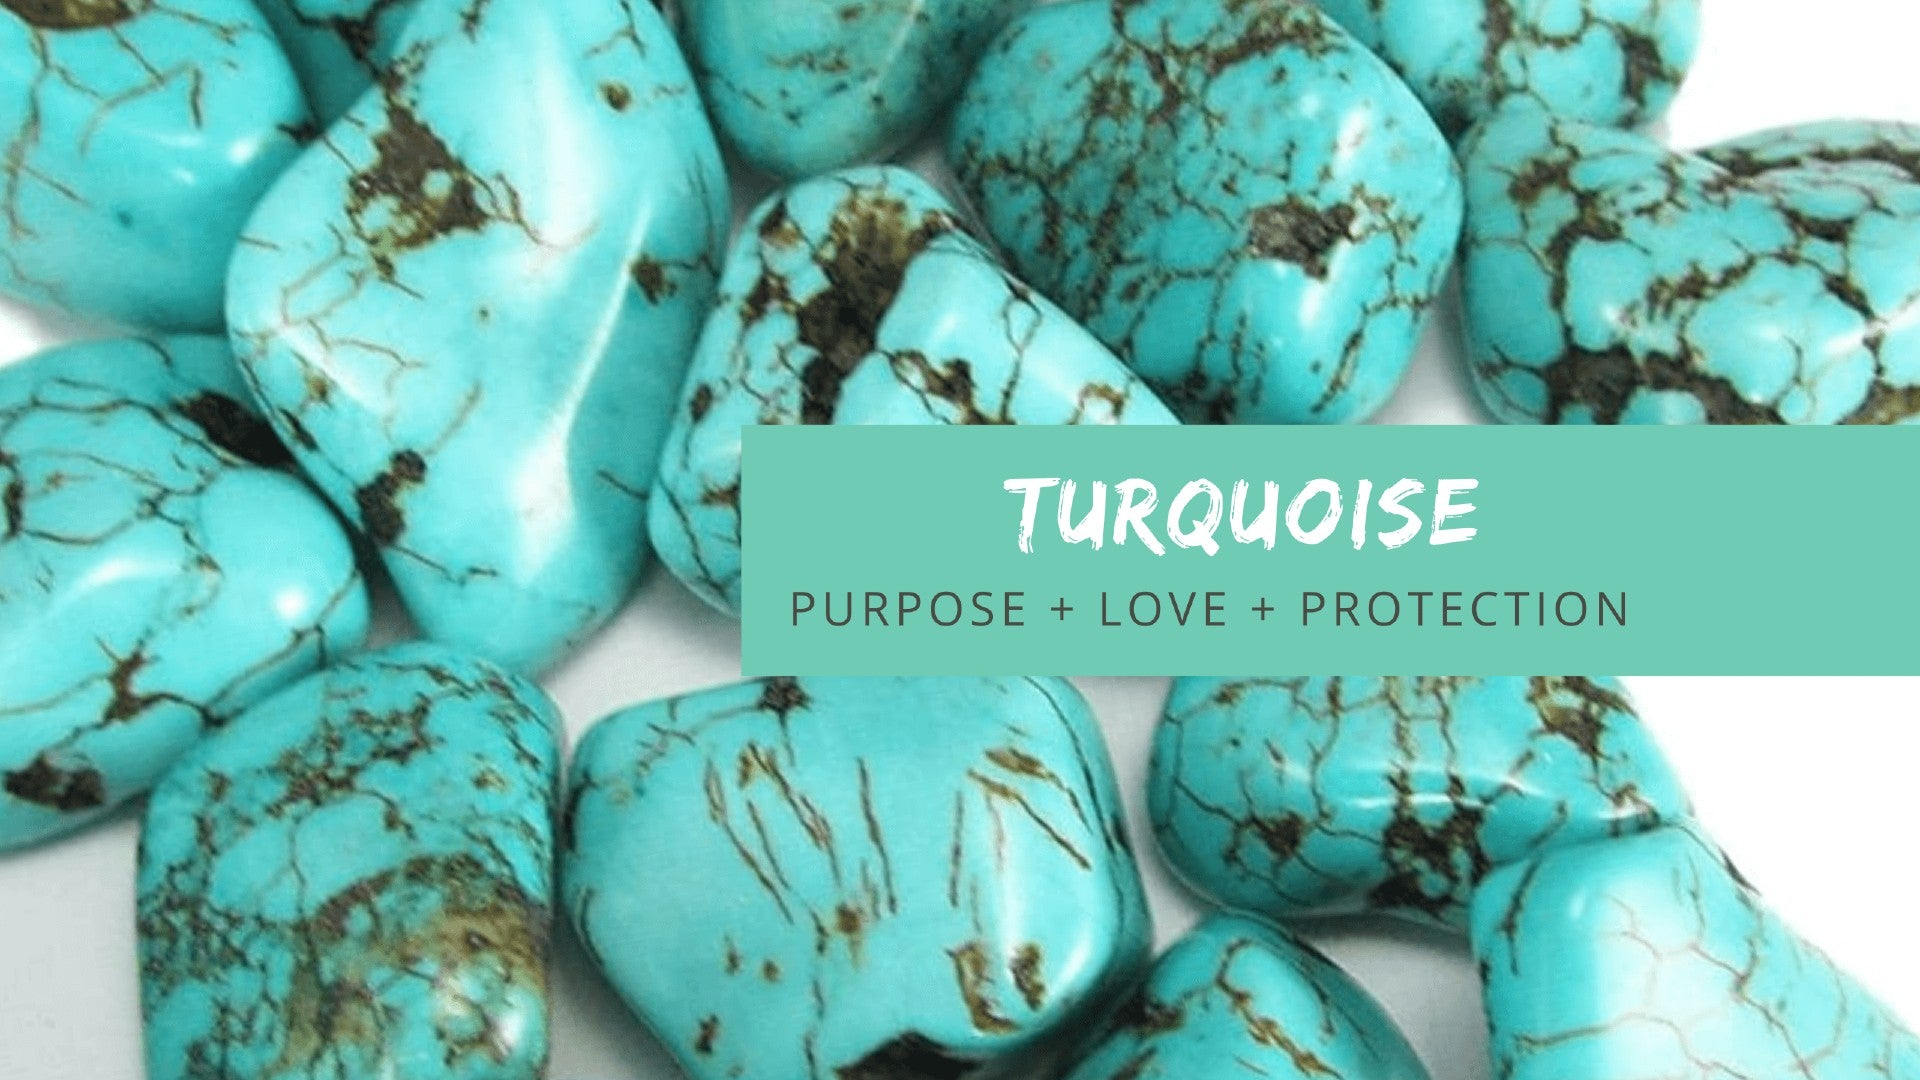 Turquoise Healing Properties | Turquoise Meaning | Benefits Of Turquoise  - Magic Crystals